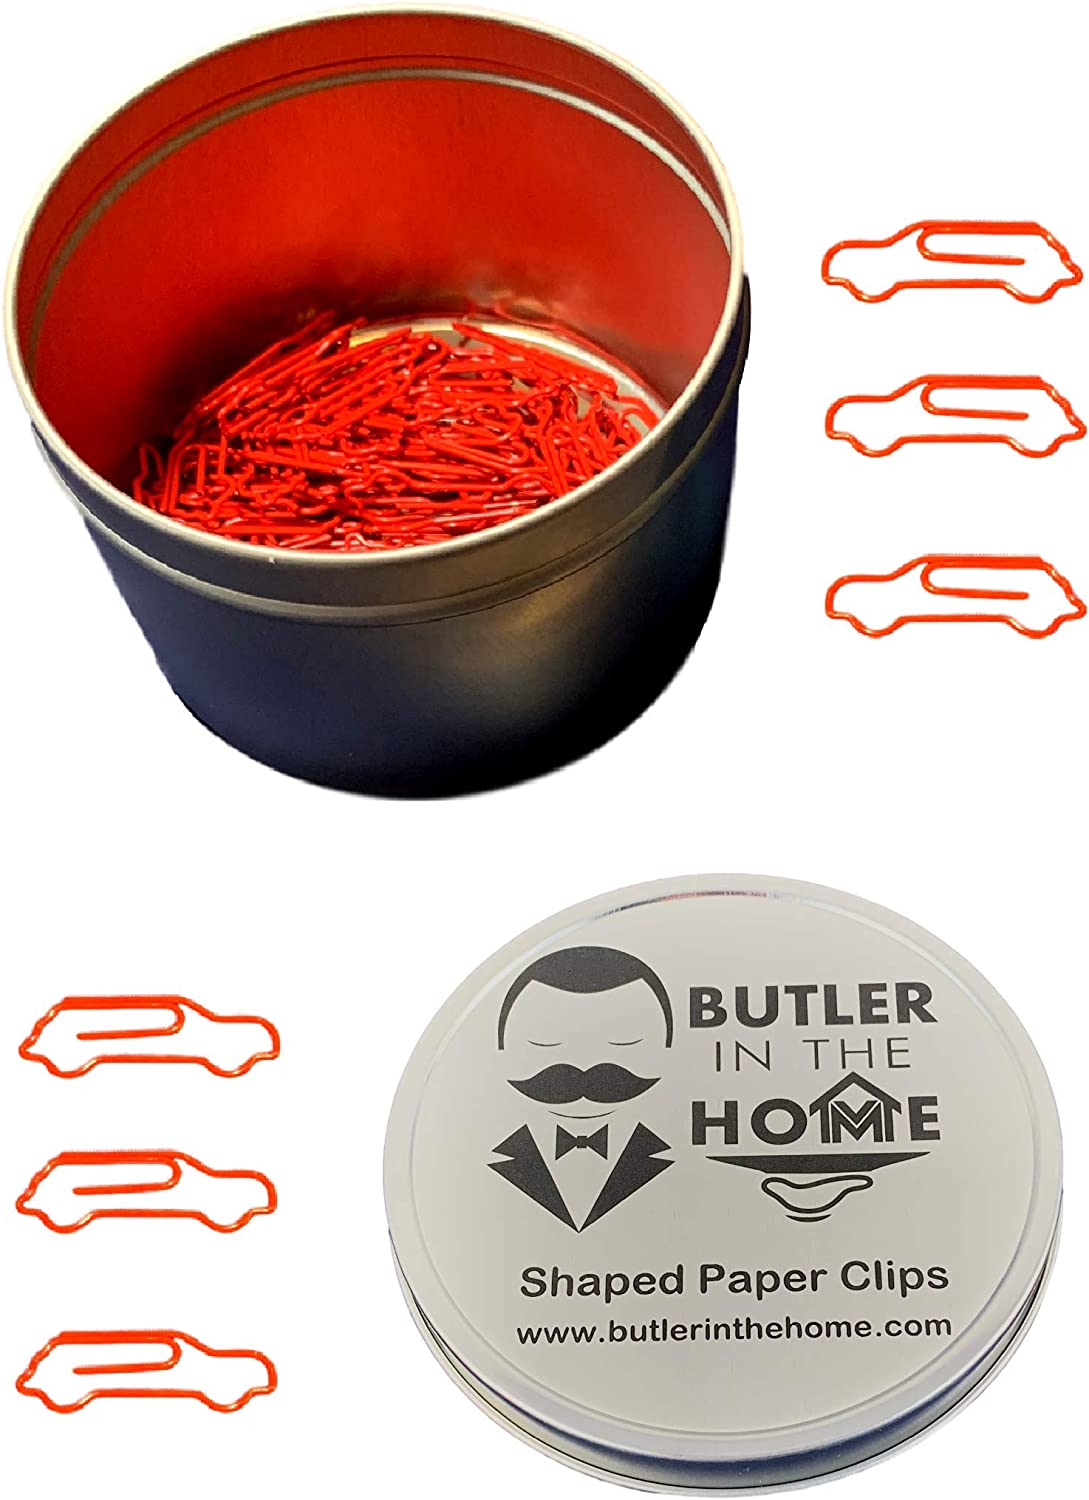 Butler in the Home Automobile Race Car Shaped Paper Clips Great for Paper Clip Collectors or Office Gift - Comes in Round Tin with Lid and Gift Box (100 Count Red)